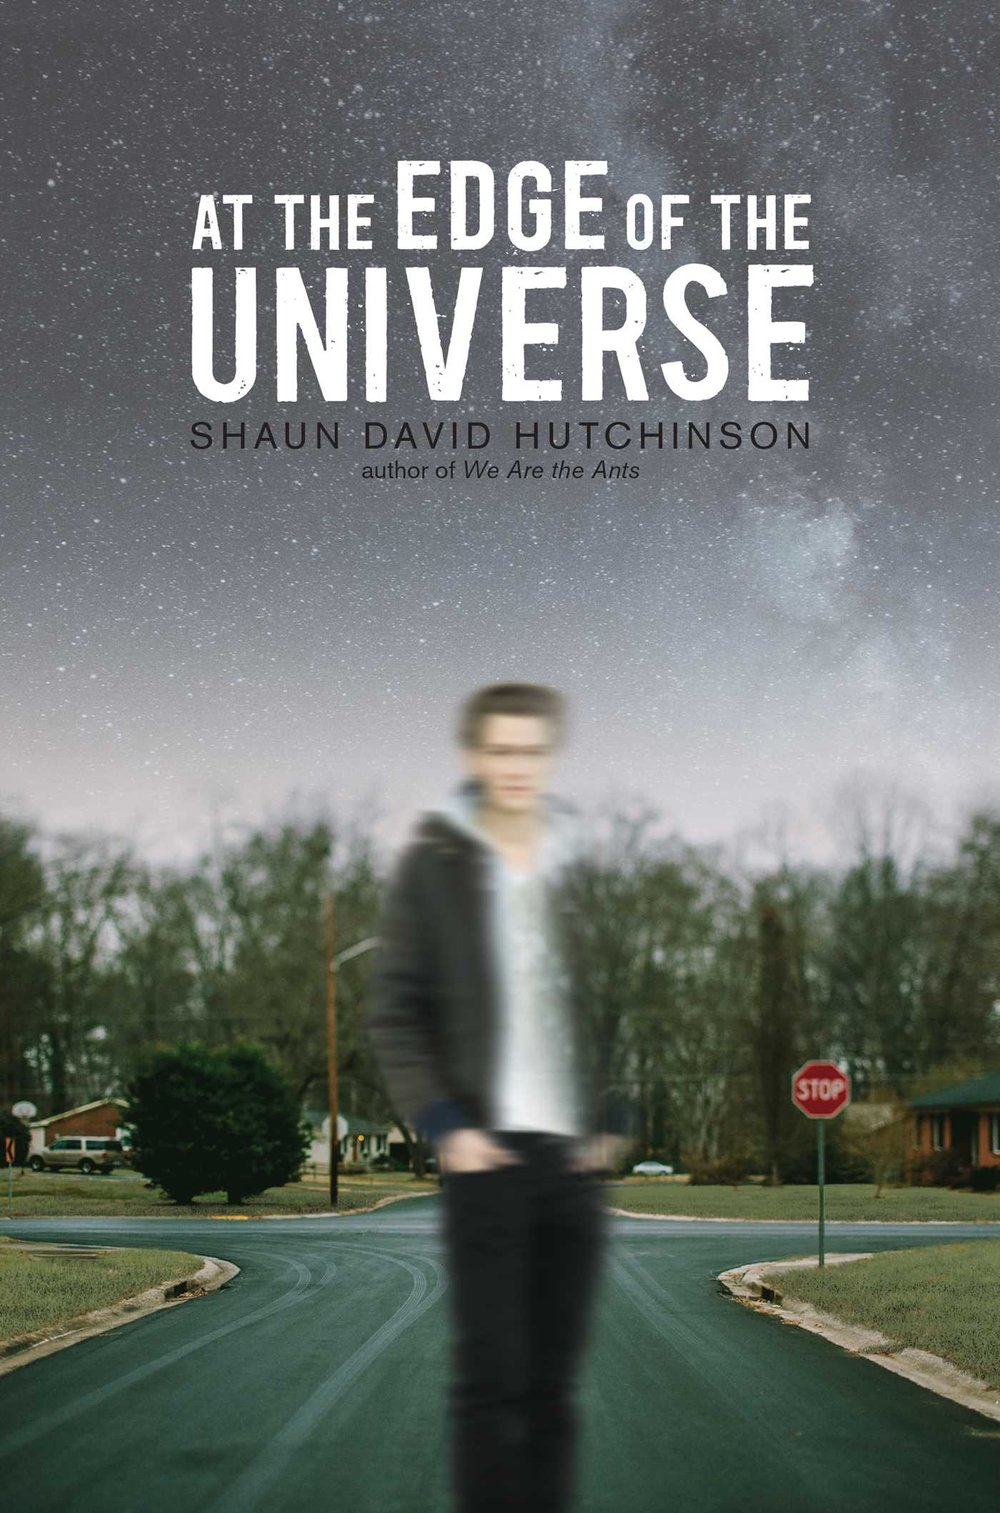 shaun-david-hutchison-at-the-edge-of-the-universe.jpg